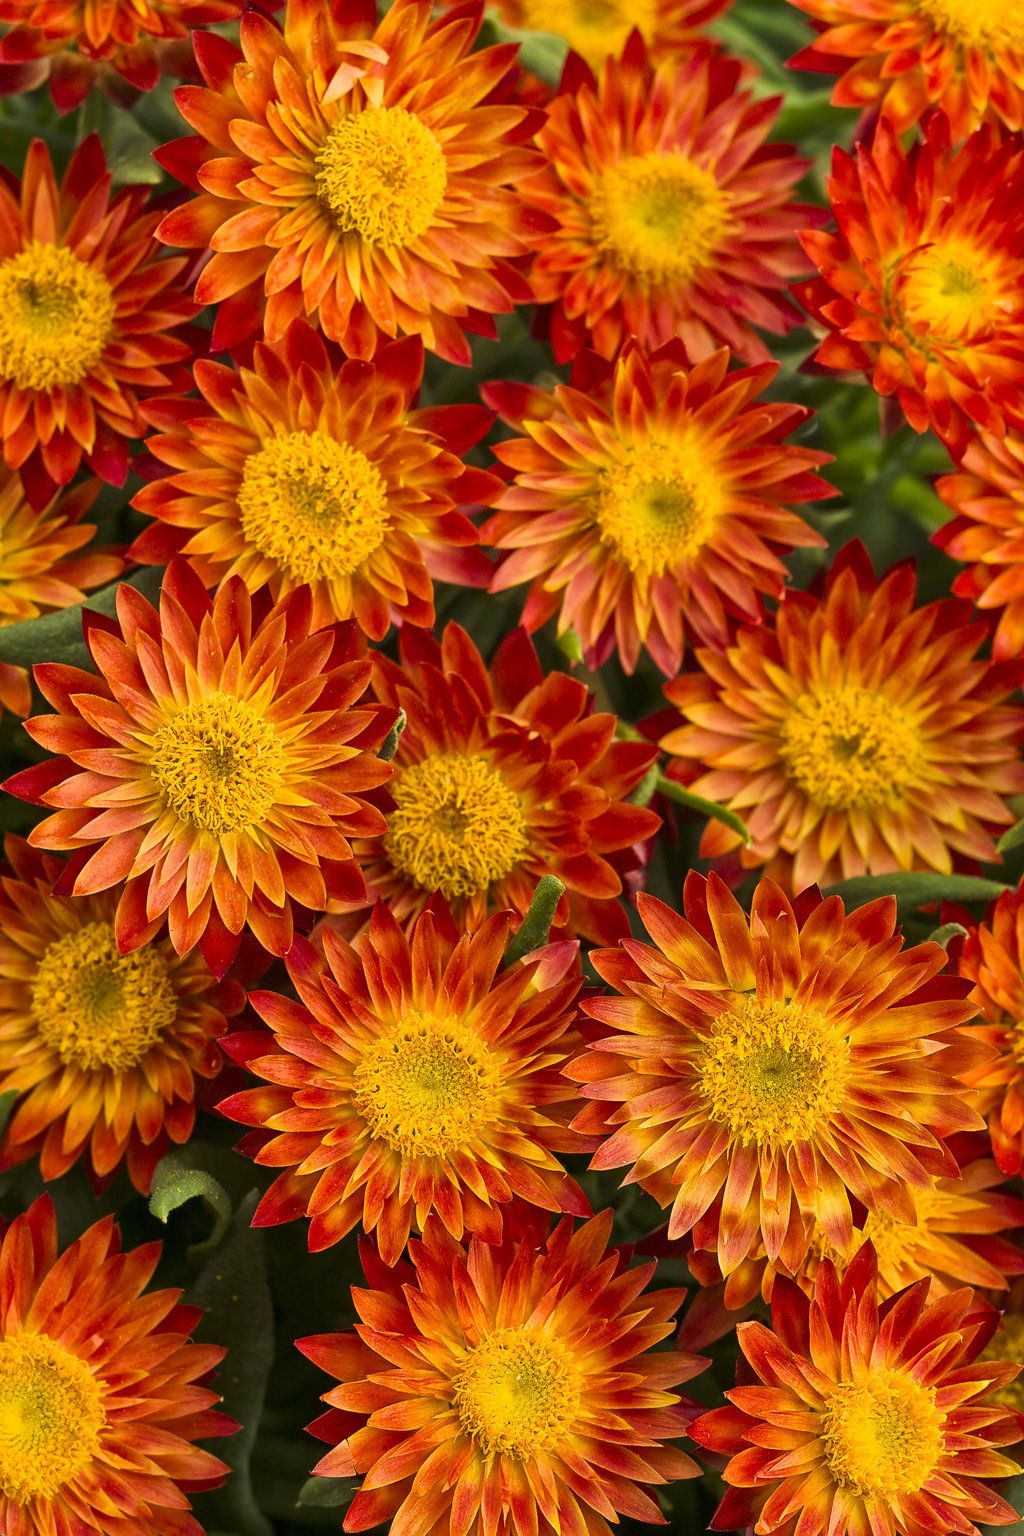 Pin By Debbie Story On Flowers Pinterest Plants Flowers And